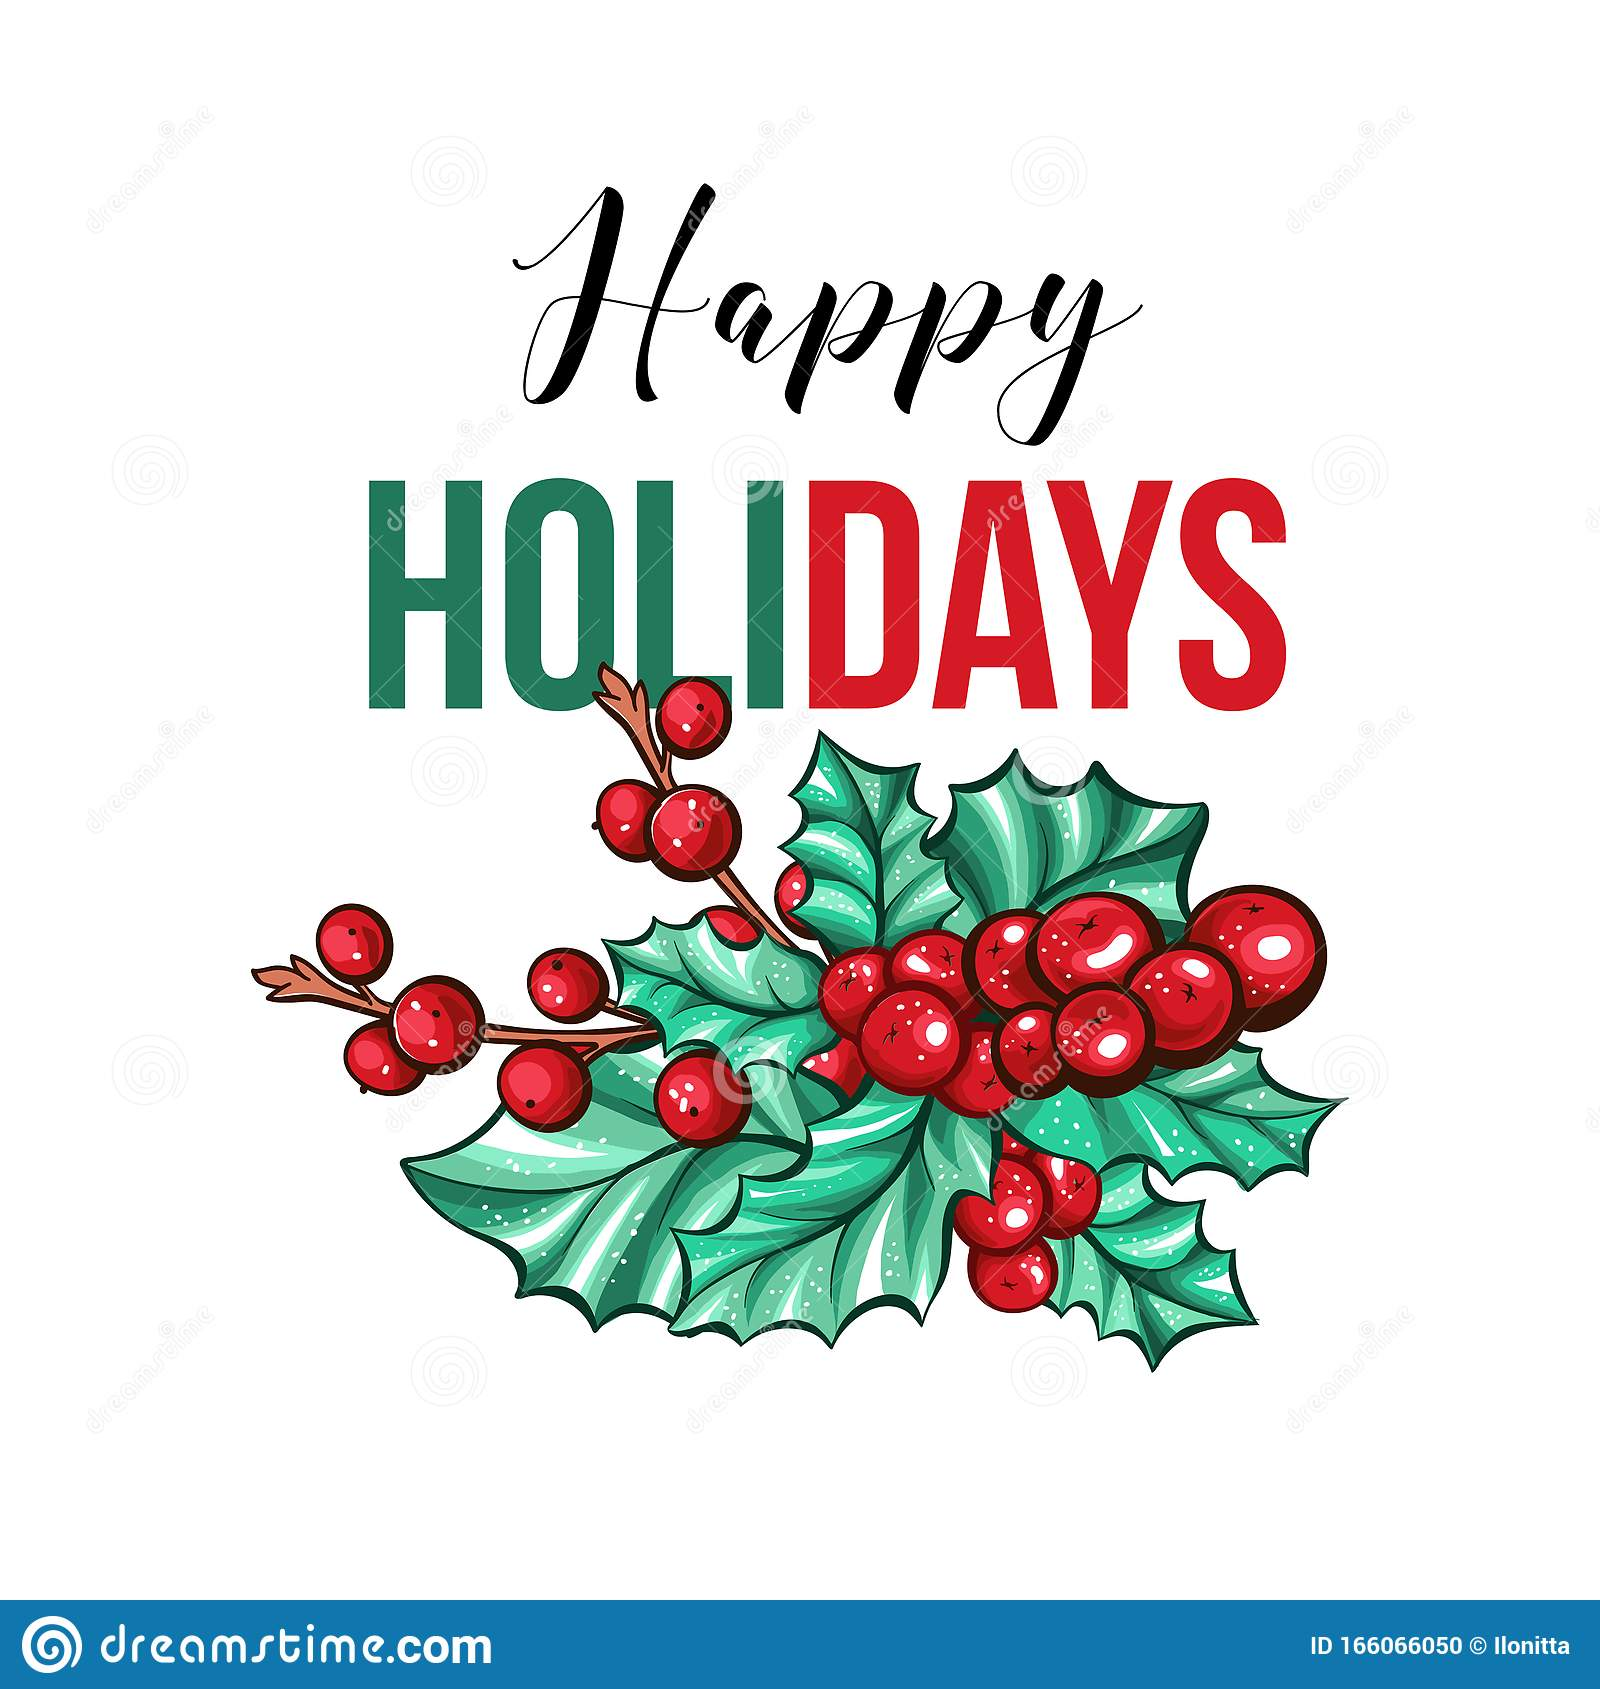 Happy Holidays Gift Card Template With Holly Berries Christmas Clipart Stock Vector Illustration Of Holly Plant 166066050